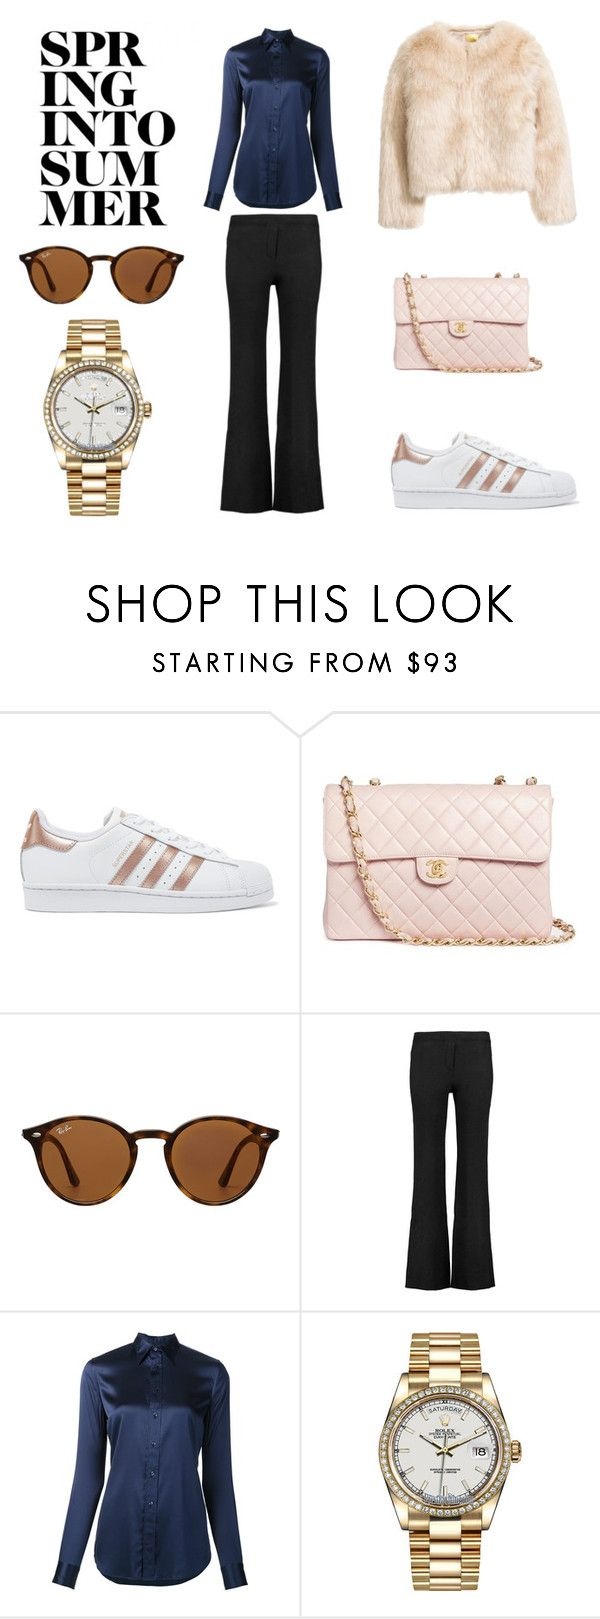 """""""Spring into summer"""" by majahellstrom on Polyvore featuring adidas Originals, Chanel, Ray-Ban, Helmut Lang, Ralph Lauren and Rolex"""